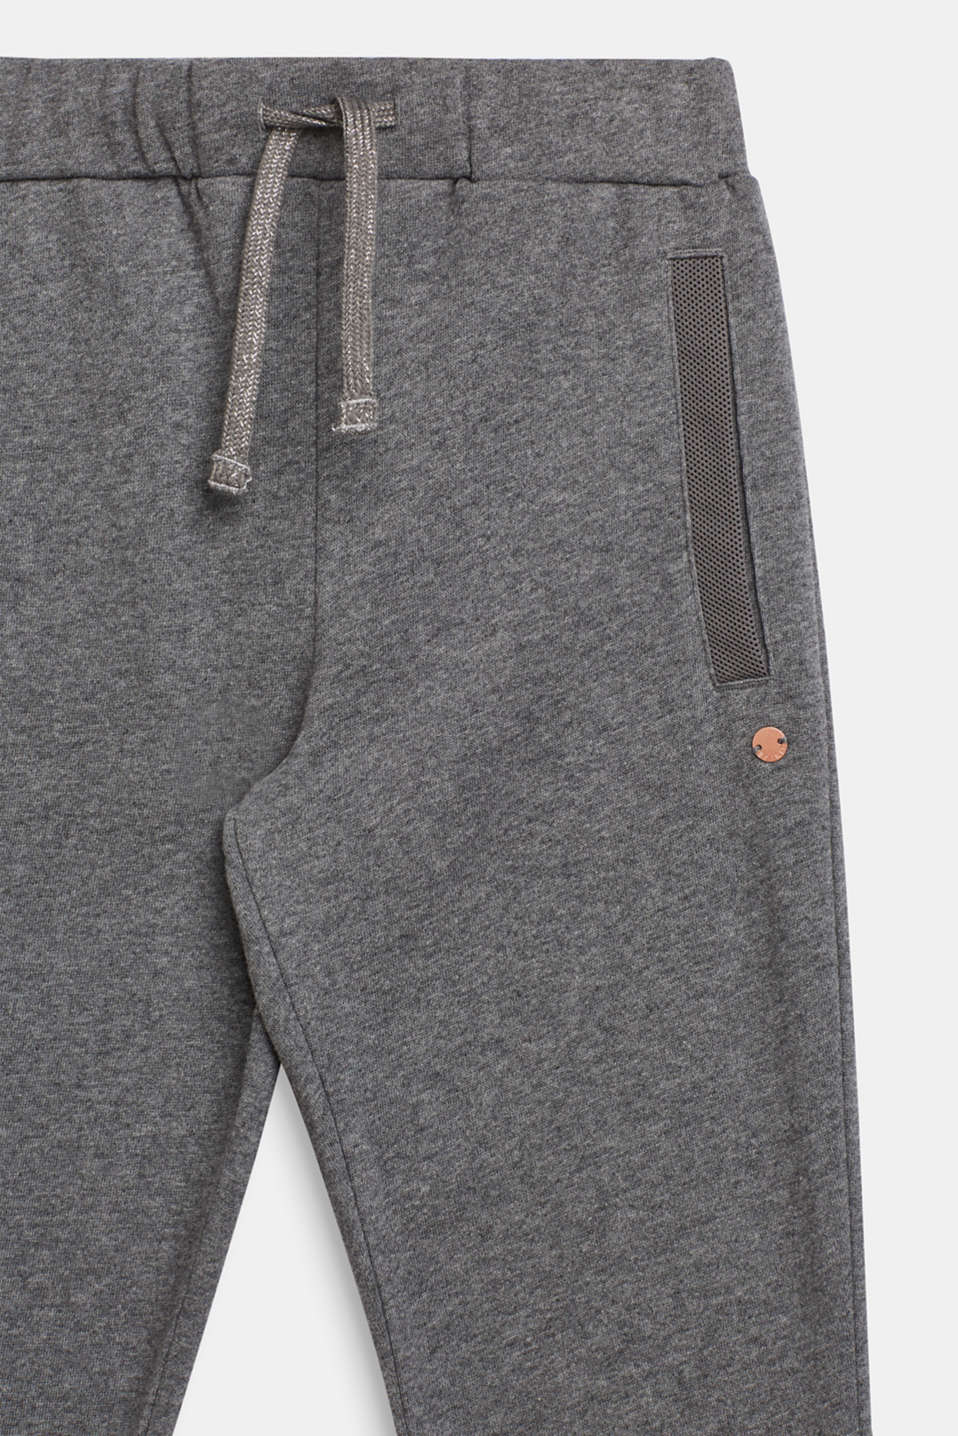 Melange sweatshirt fabric trousers made of 100% cotton, LCDARK HEATHER G, detail image number 2